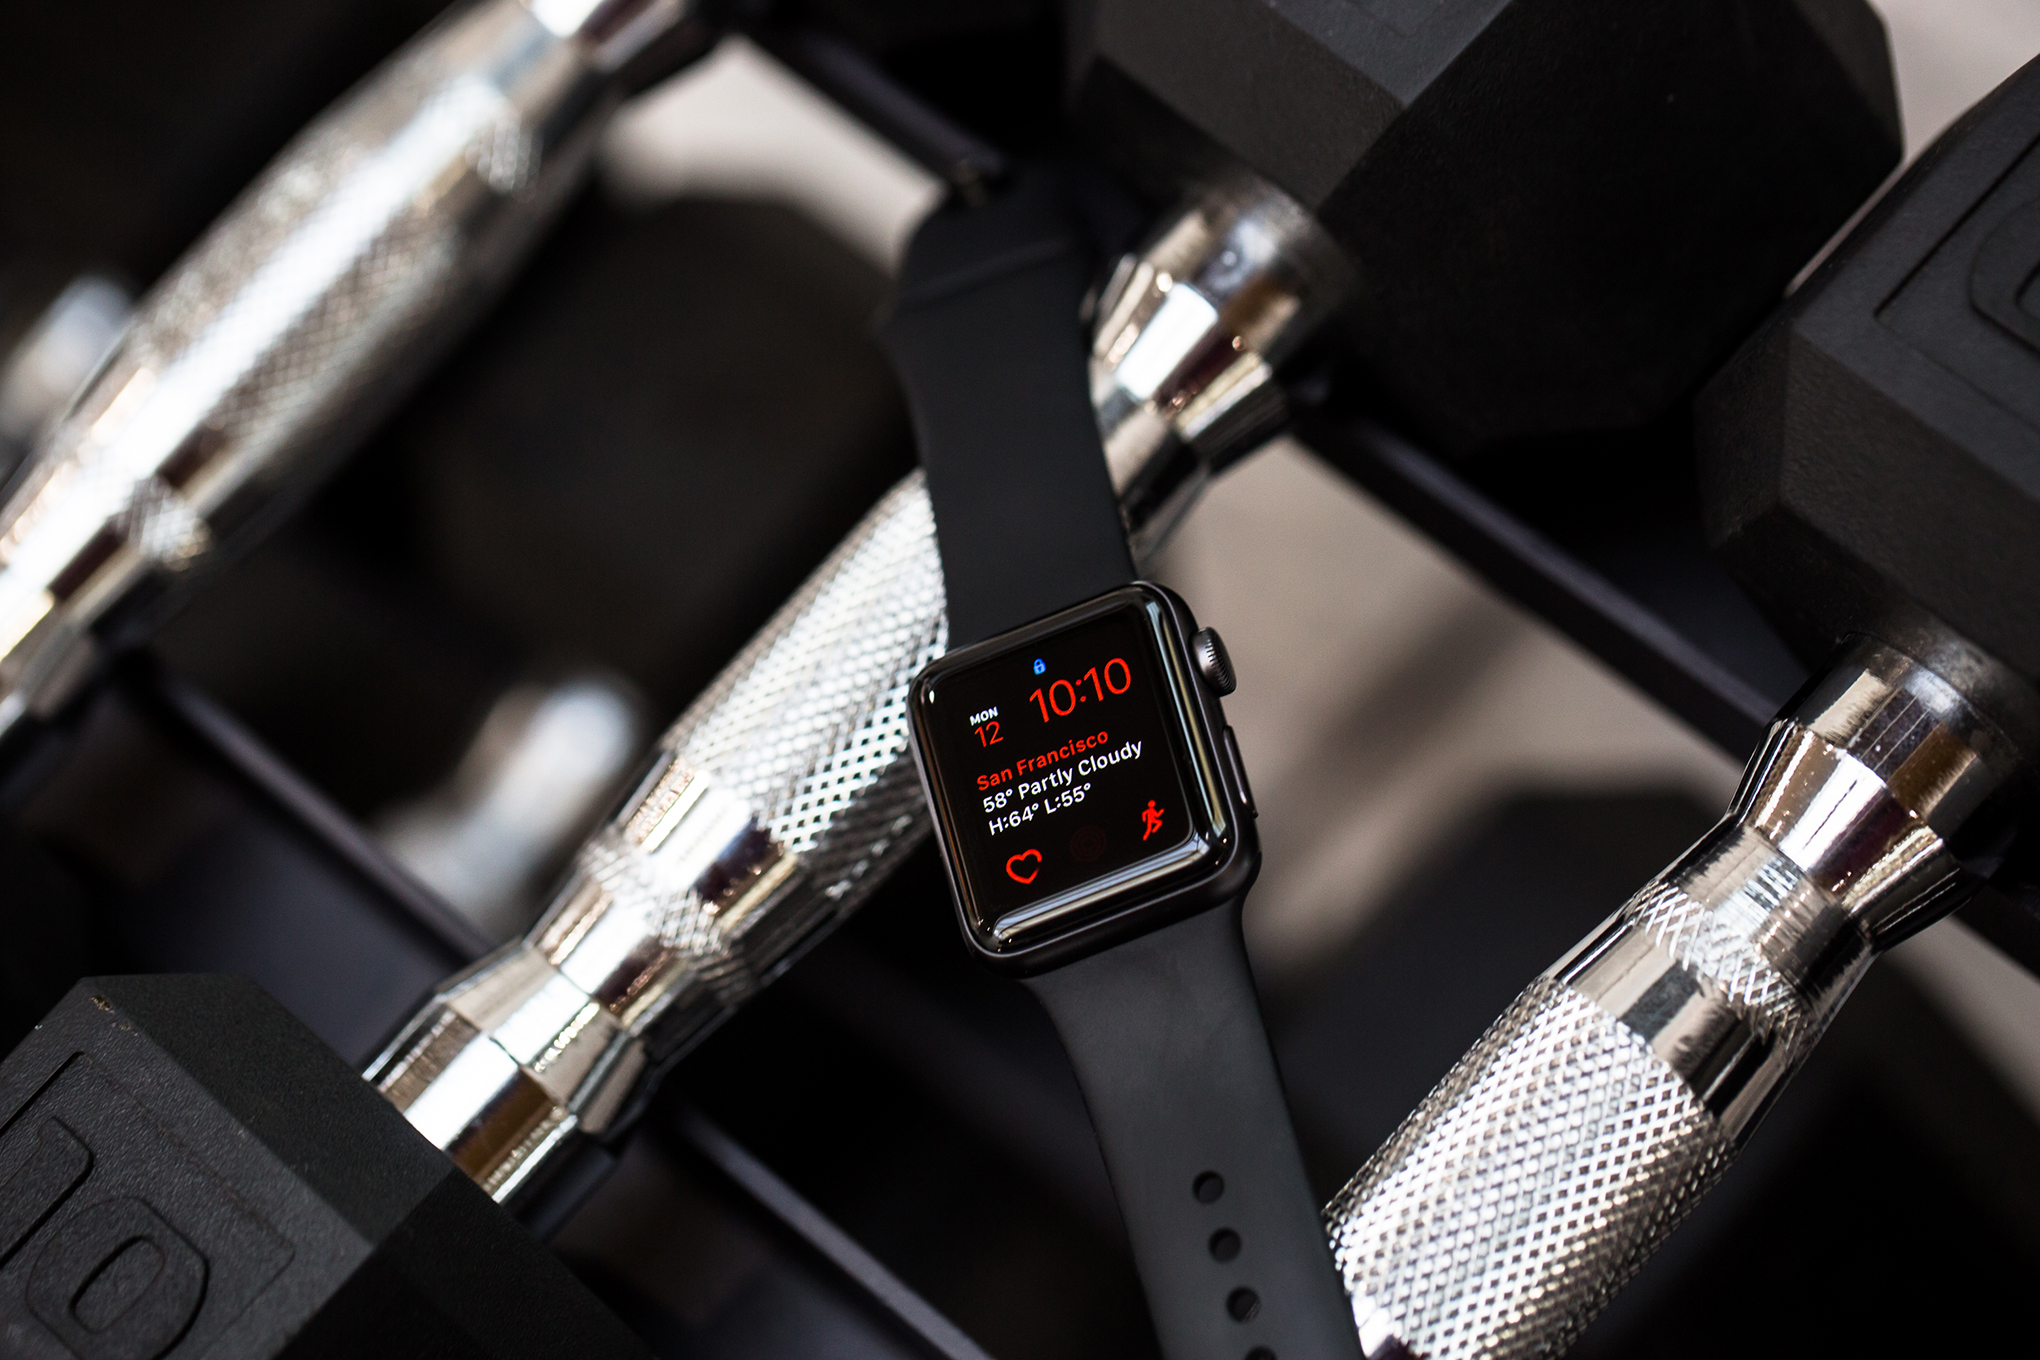 Apple Will Repair Some Watch 2 Models That Have Swollen Baterai Iwatch 38mm Batteries Or Wont Power On For Free The Verge